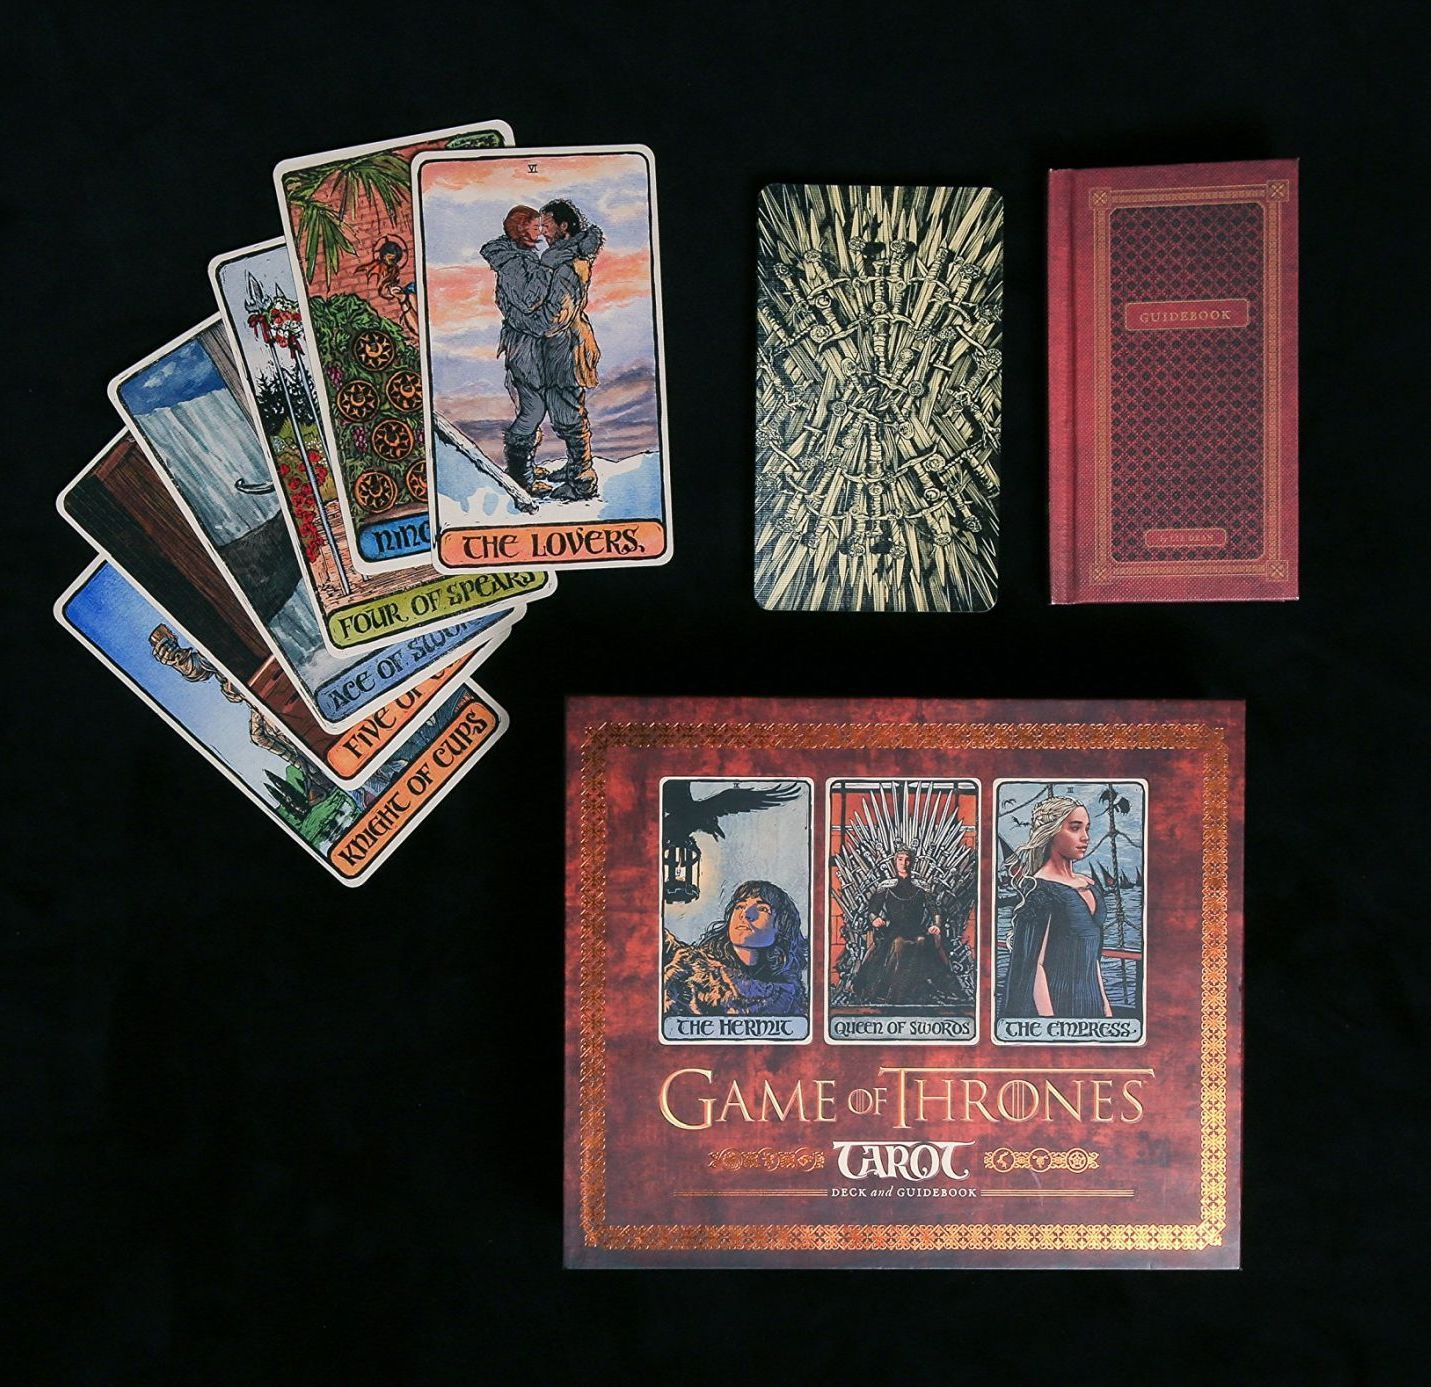 Game of Thrones: Tarot Cards (Deck and Guidebook) - 4